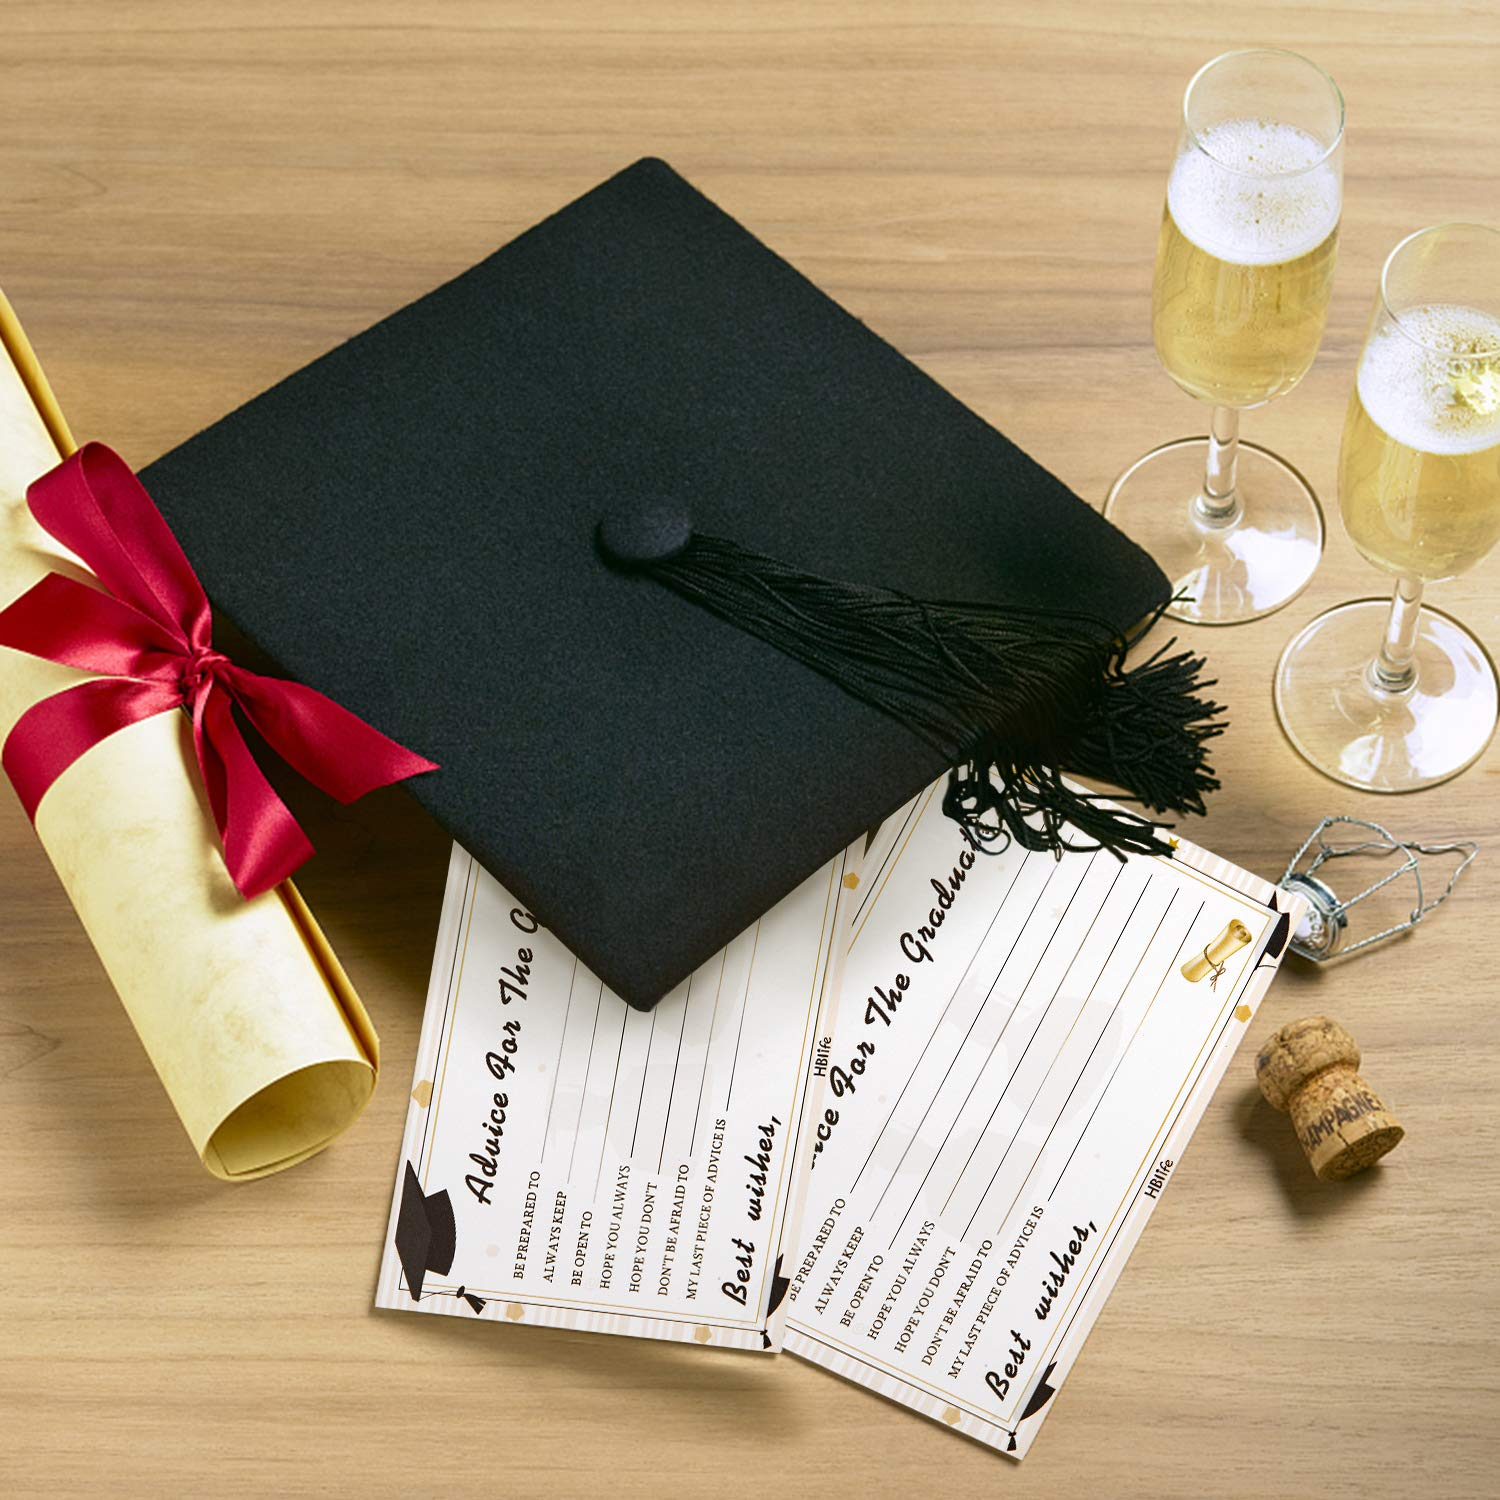 University Grad Party Games Activities Invitations Decorations Supplies High School 50 Graduation Advice Cards For Graduate Class of 2019 College